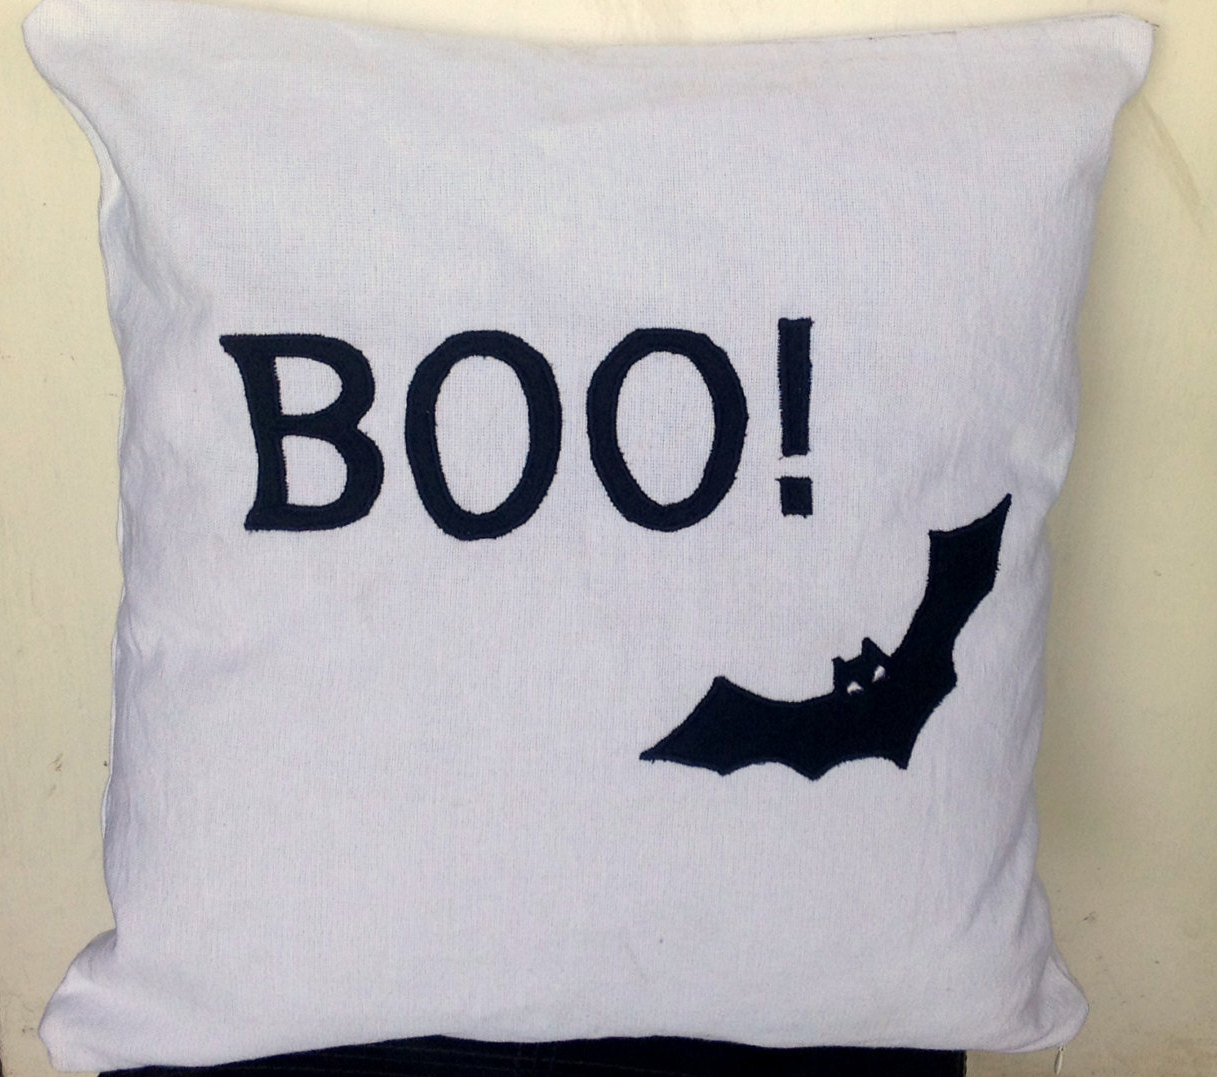 Holiday Pillow Covers Halloween Pillow Halloween Deoor Bat Pillows 18x18 Holiday Cushion Cover Holiday Pillows In Stock